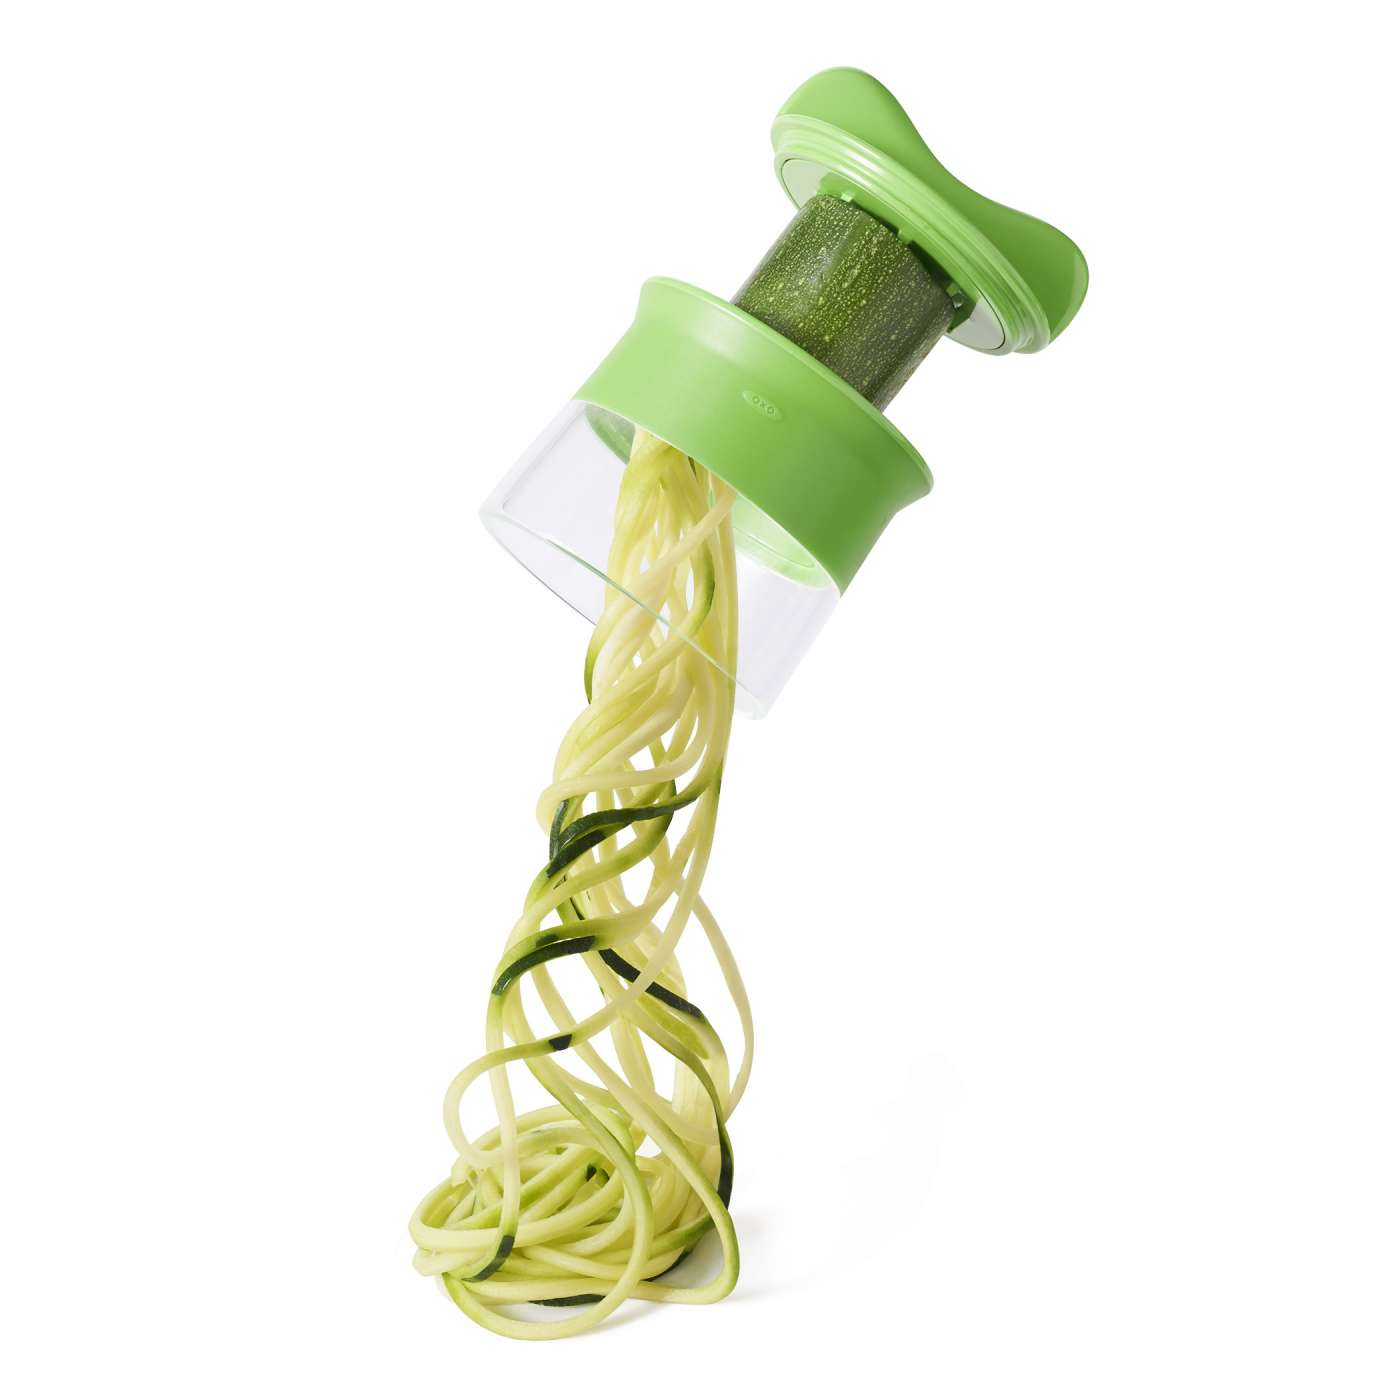 OXO Good Grips Handheld Spiralizer